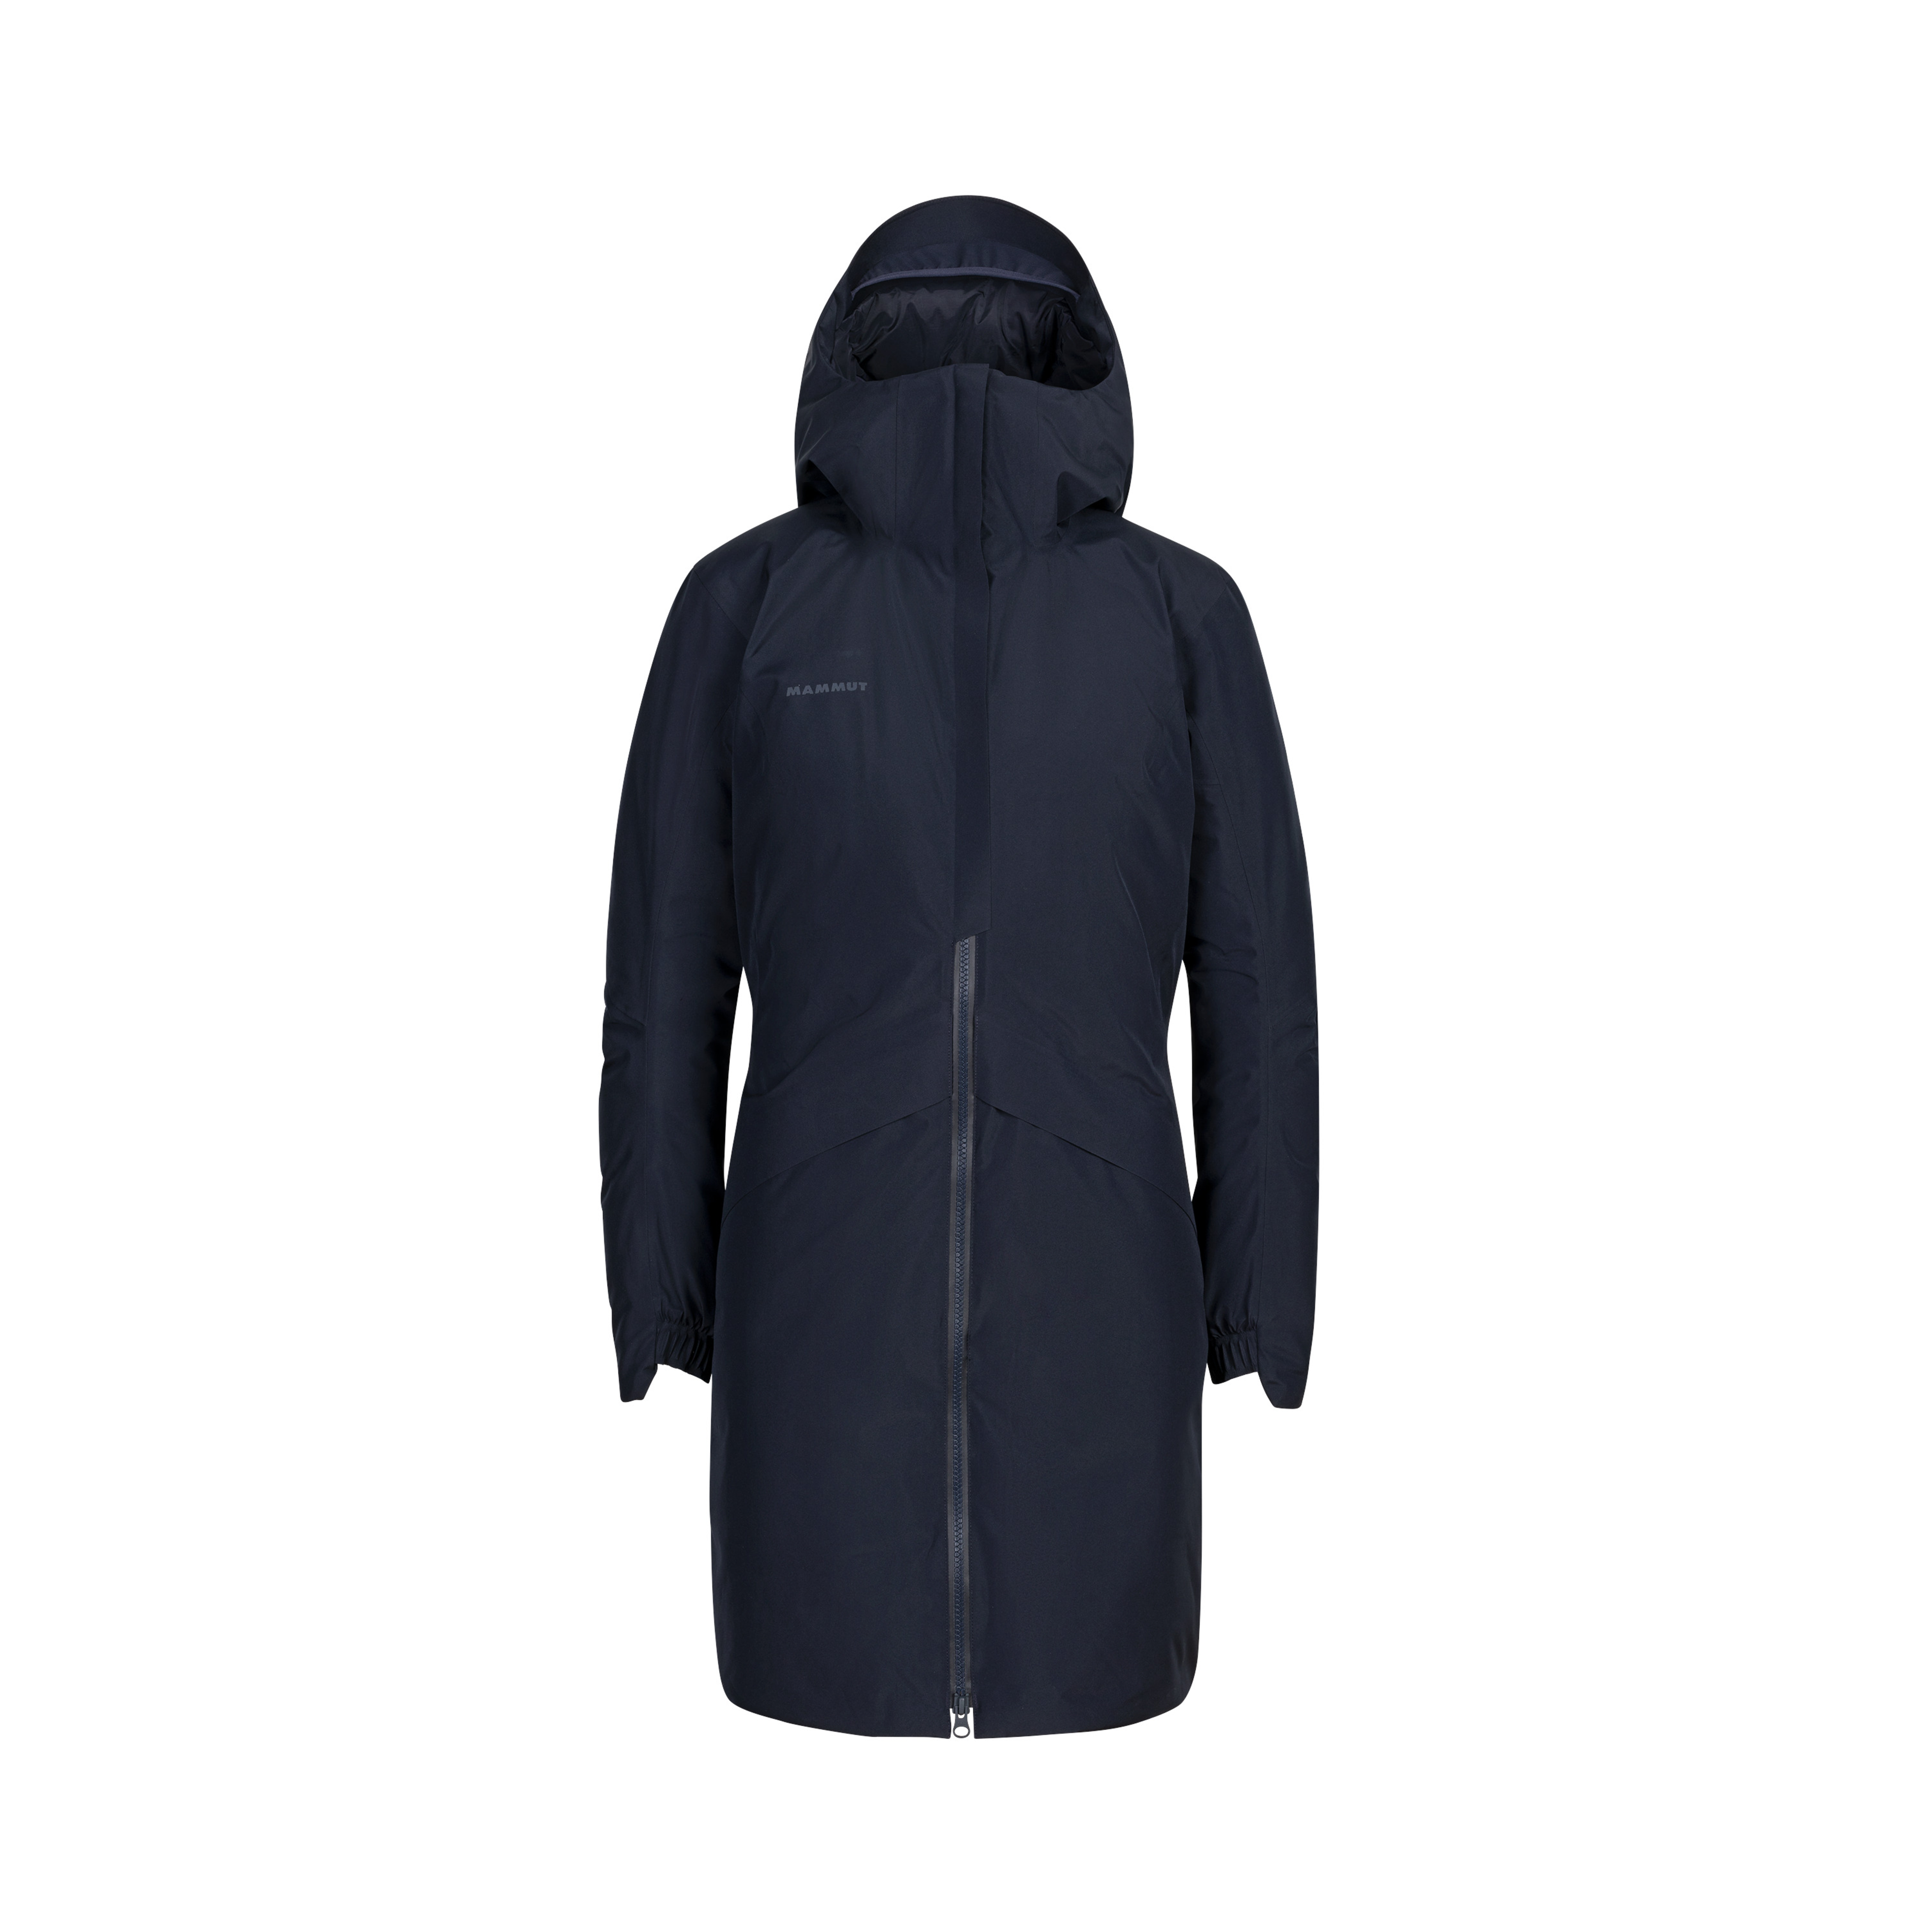 3379 HS Thermo Hooded Coat Women - night, XS thumbnail